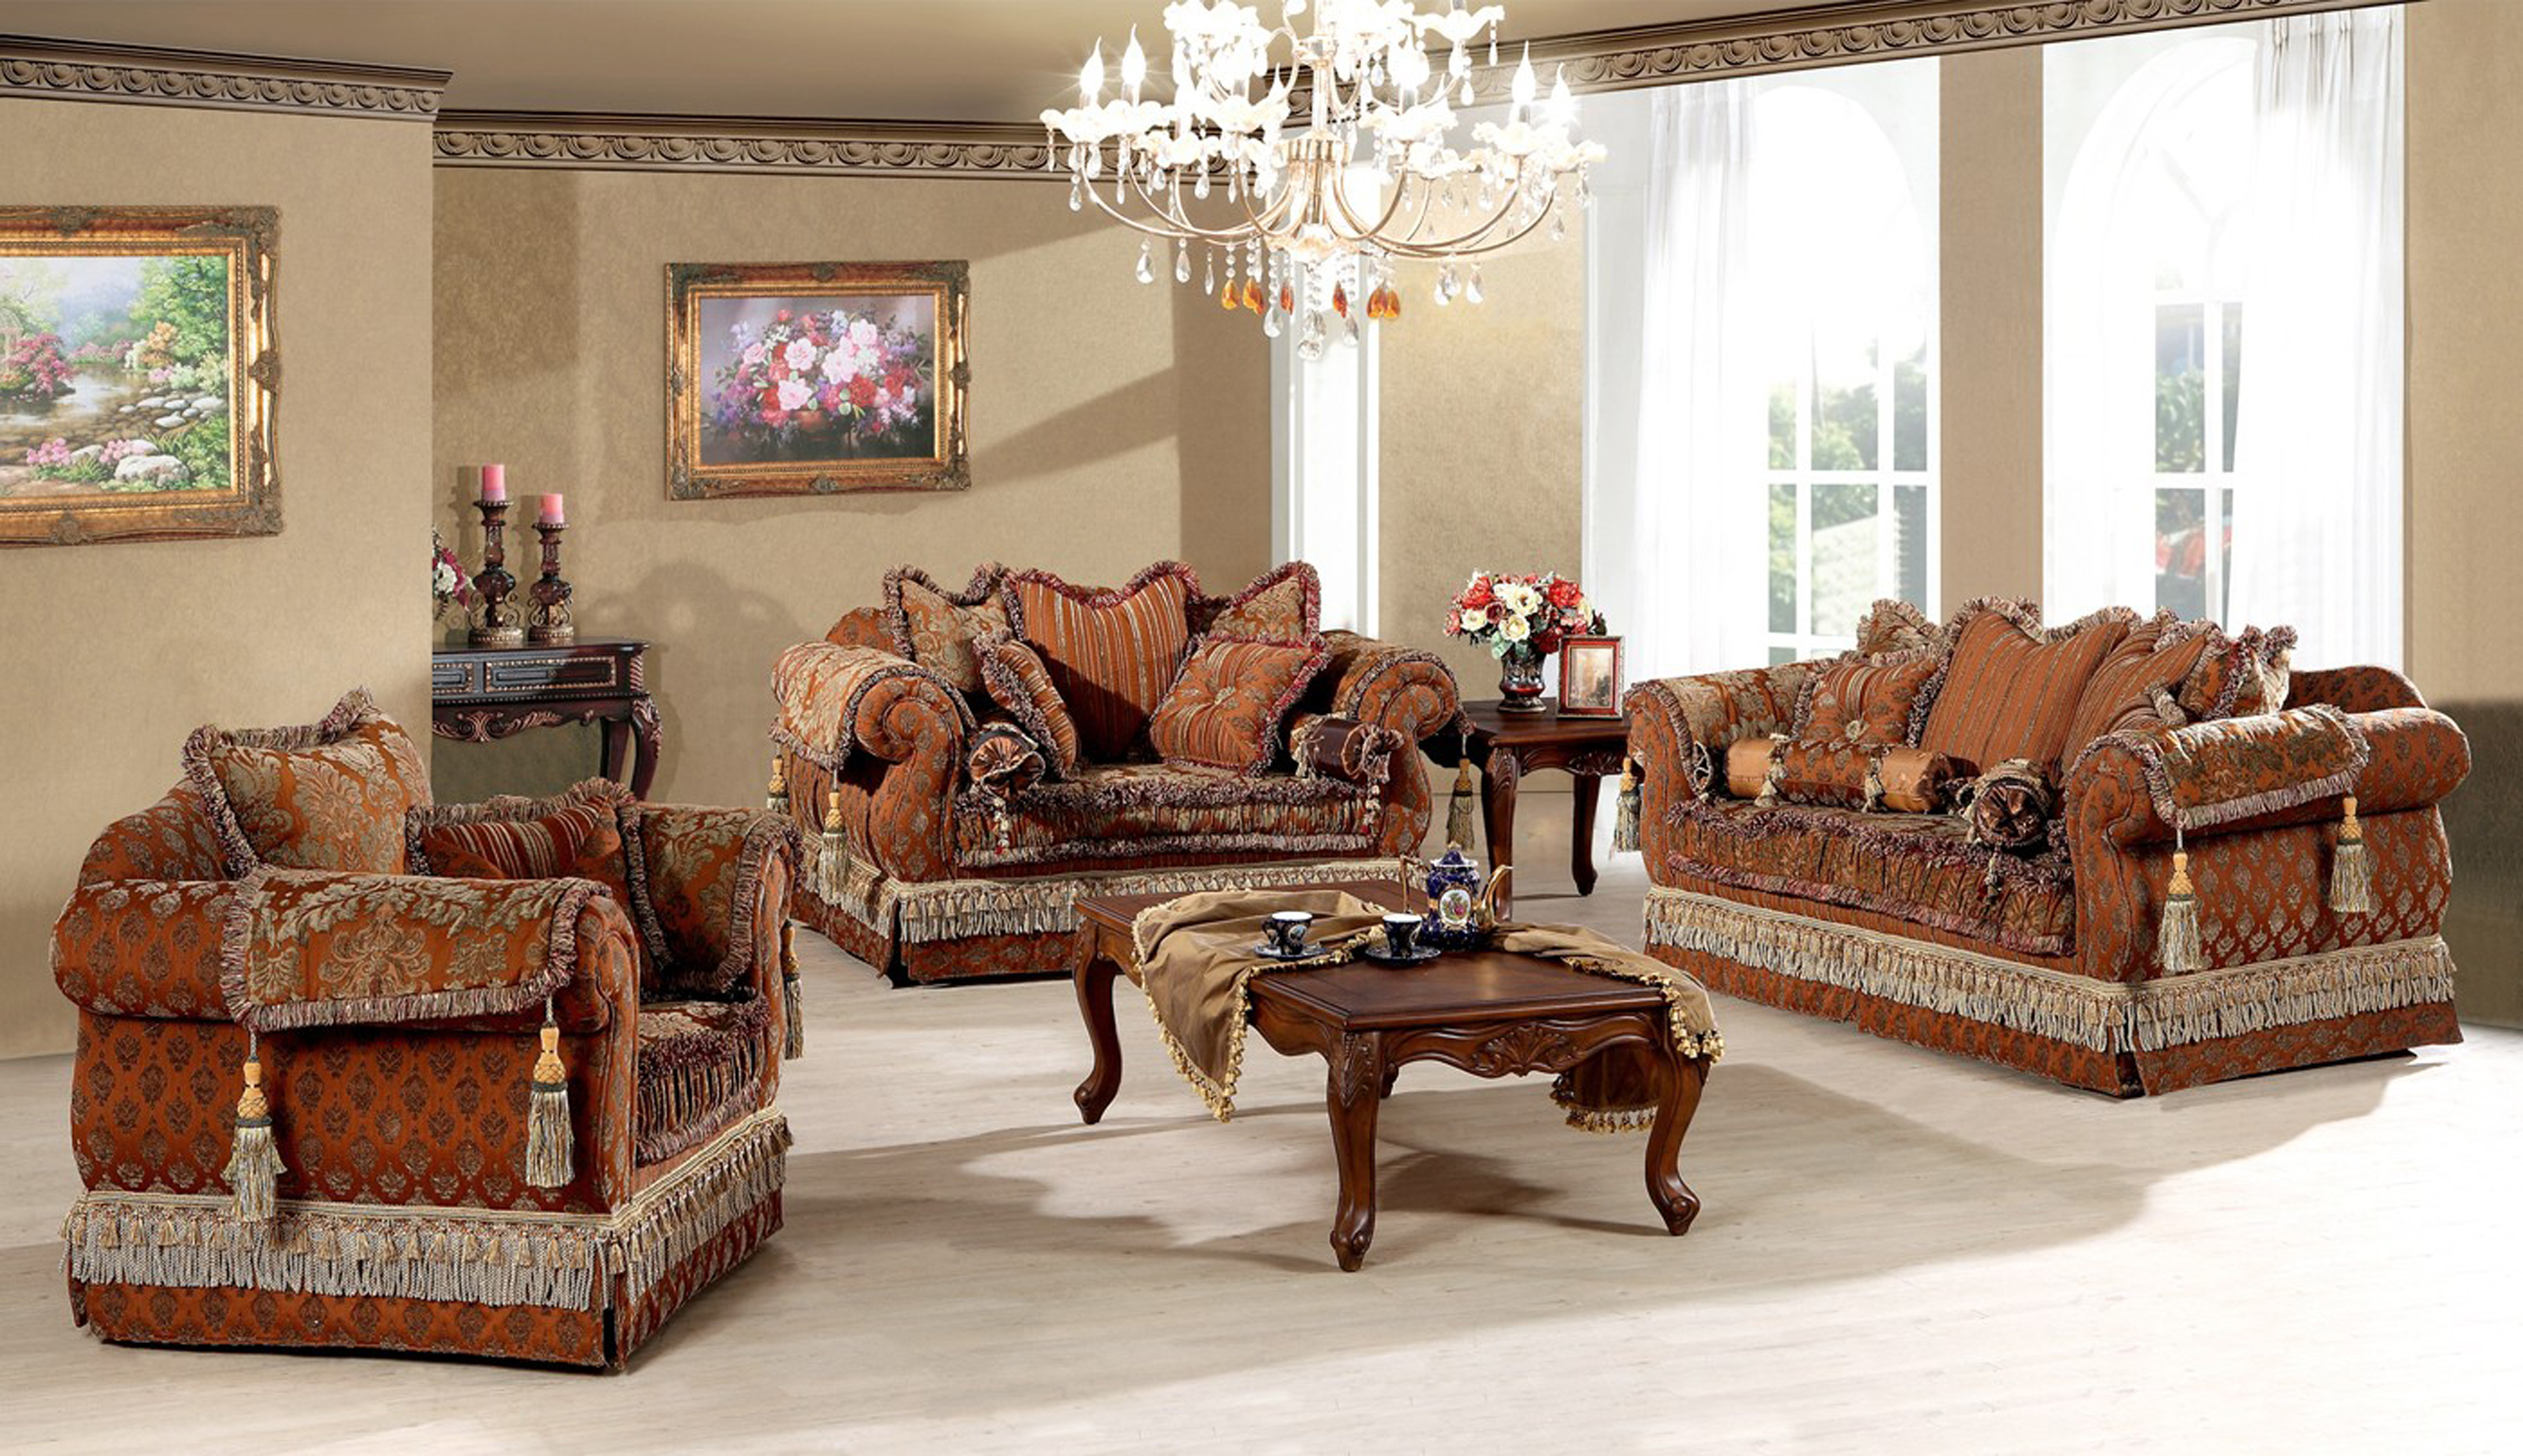 Luxurious Living Room Furniture Set Idea With White Chandelier Brown Table And Brown Sofas With Cushions Gorgeous Living Room Furniture Set Ideas (Image 22 of 123)